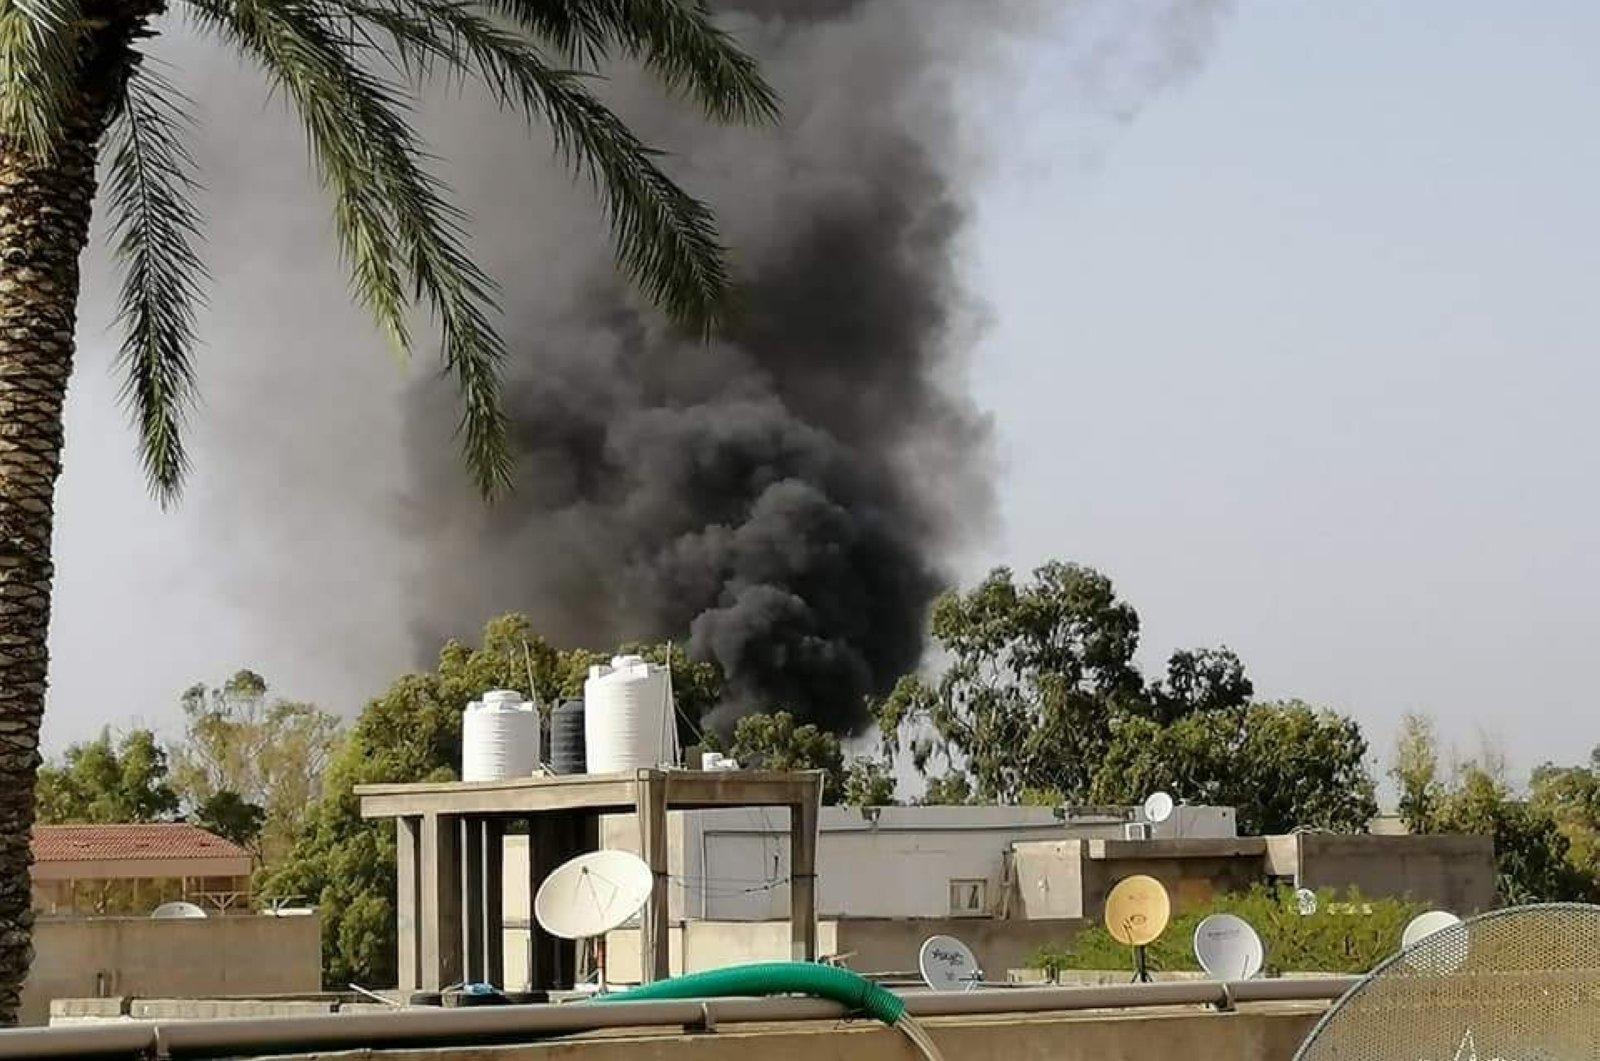 Seven people were killed in an attack by warlord Khalifa Haftar on a shelter for displaced people in Fornaj district, Tripoli, Libya, May 16, 2020. (IHA Photo)